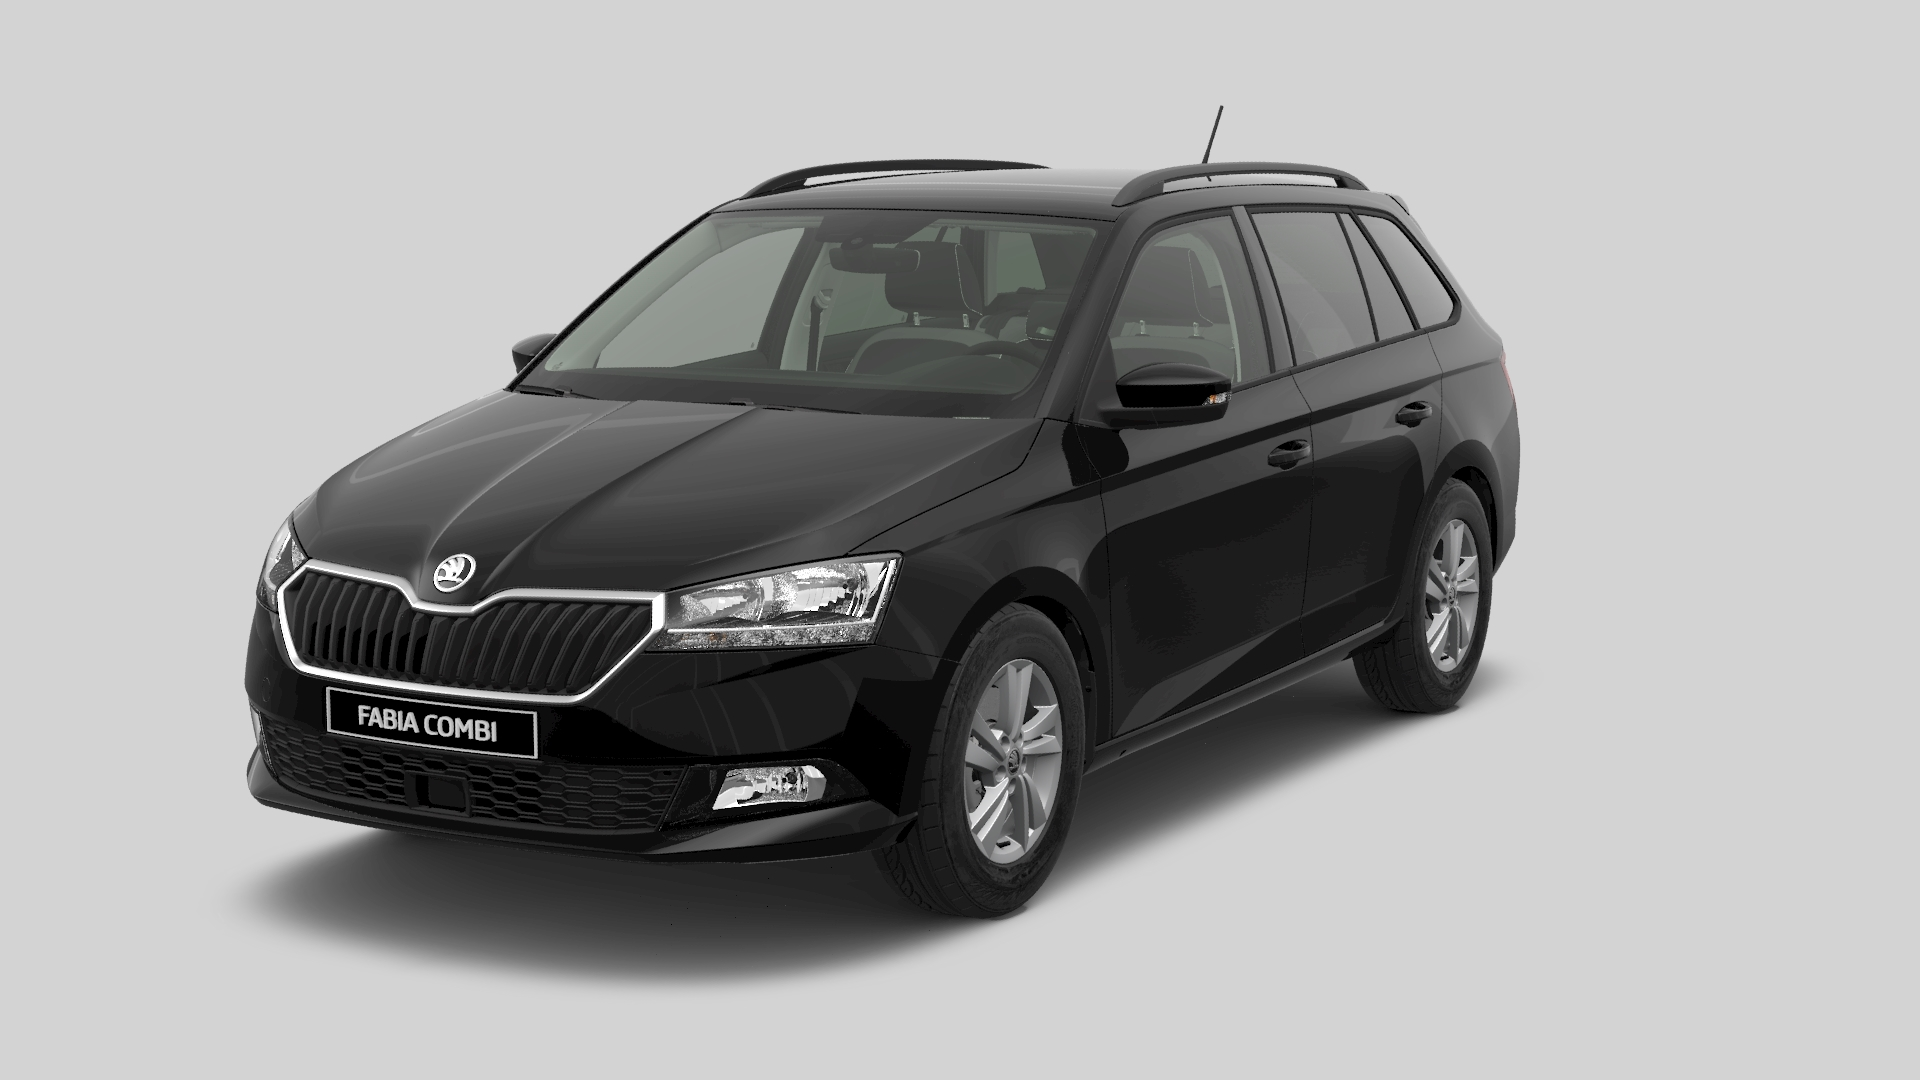 Fabia Combi Ambition 1,0 TSI 81 kW 6-speed mech.